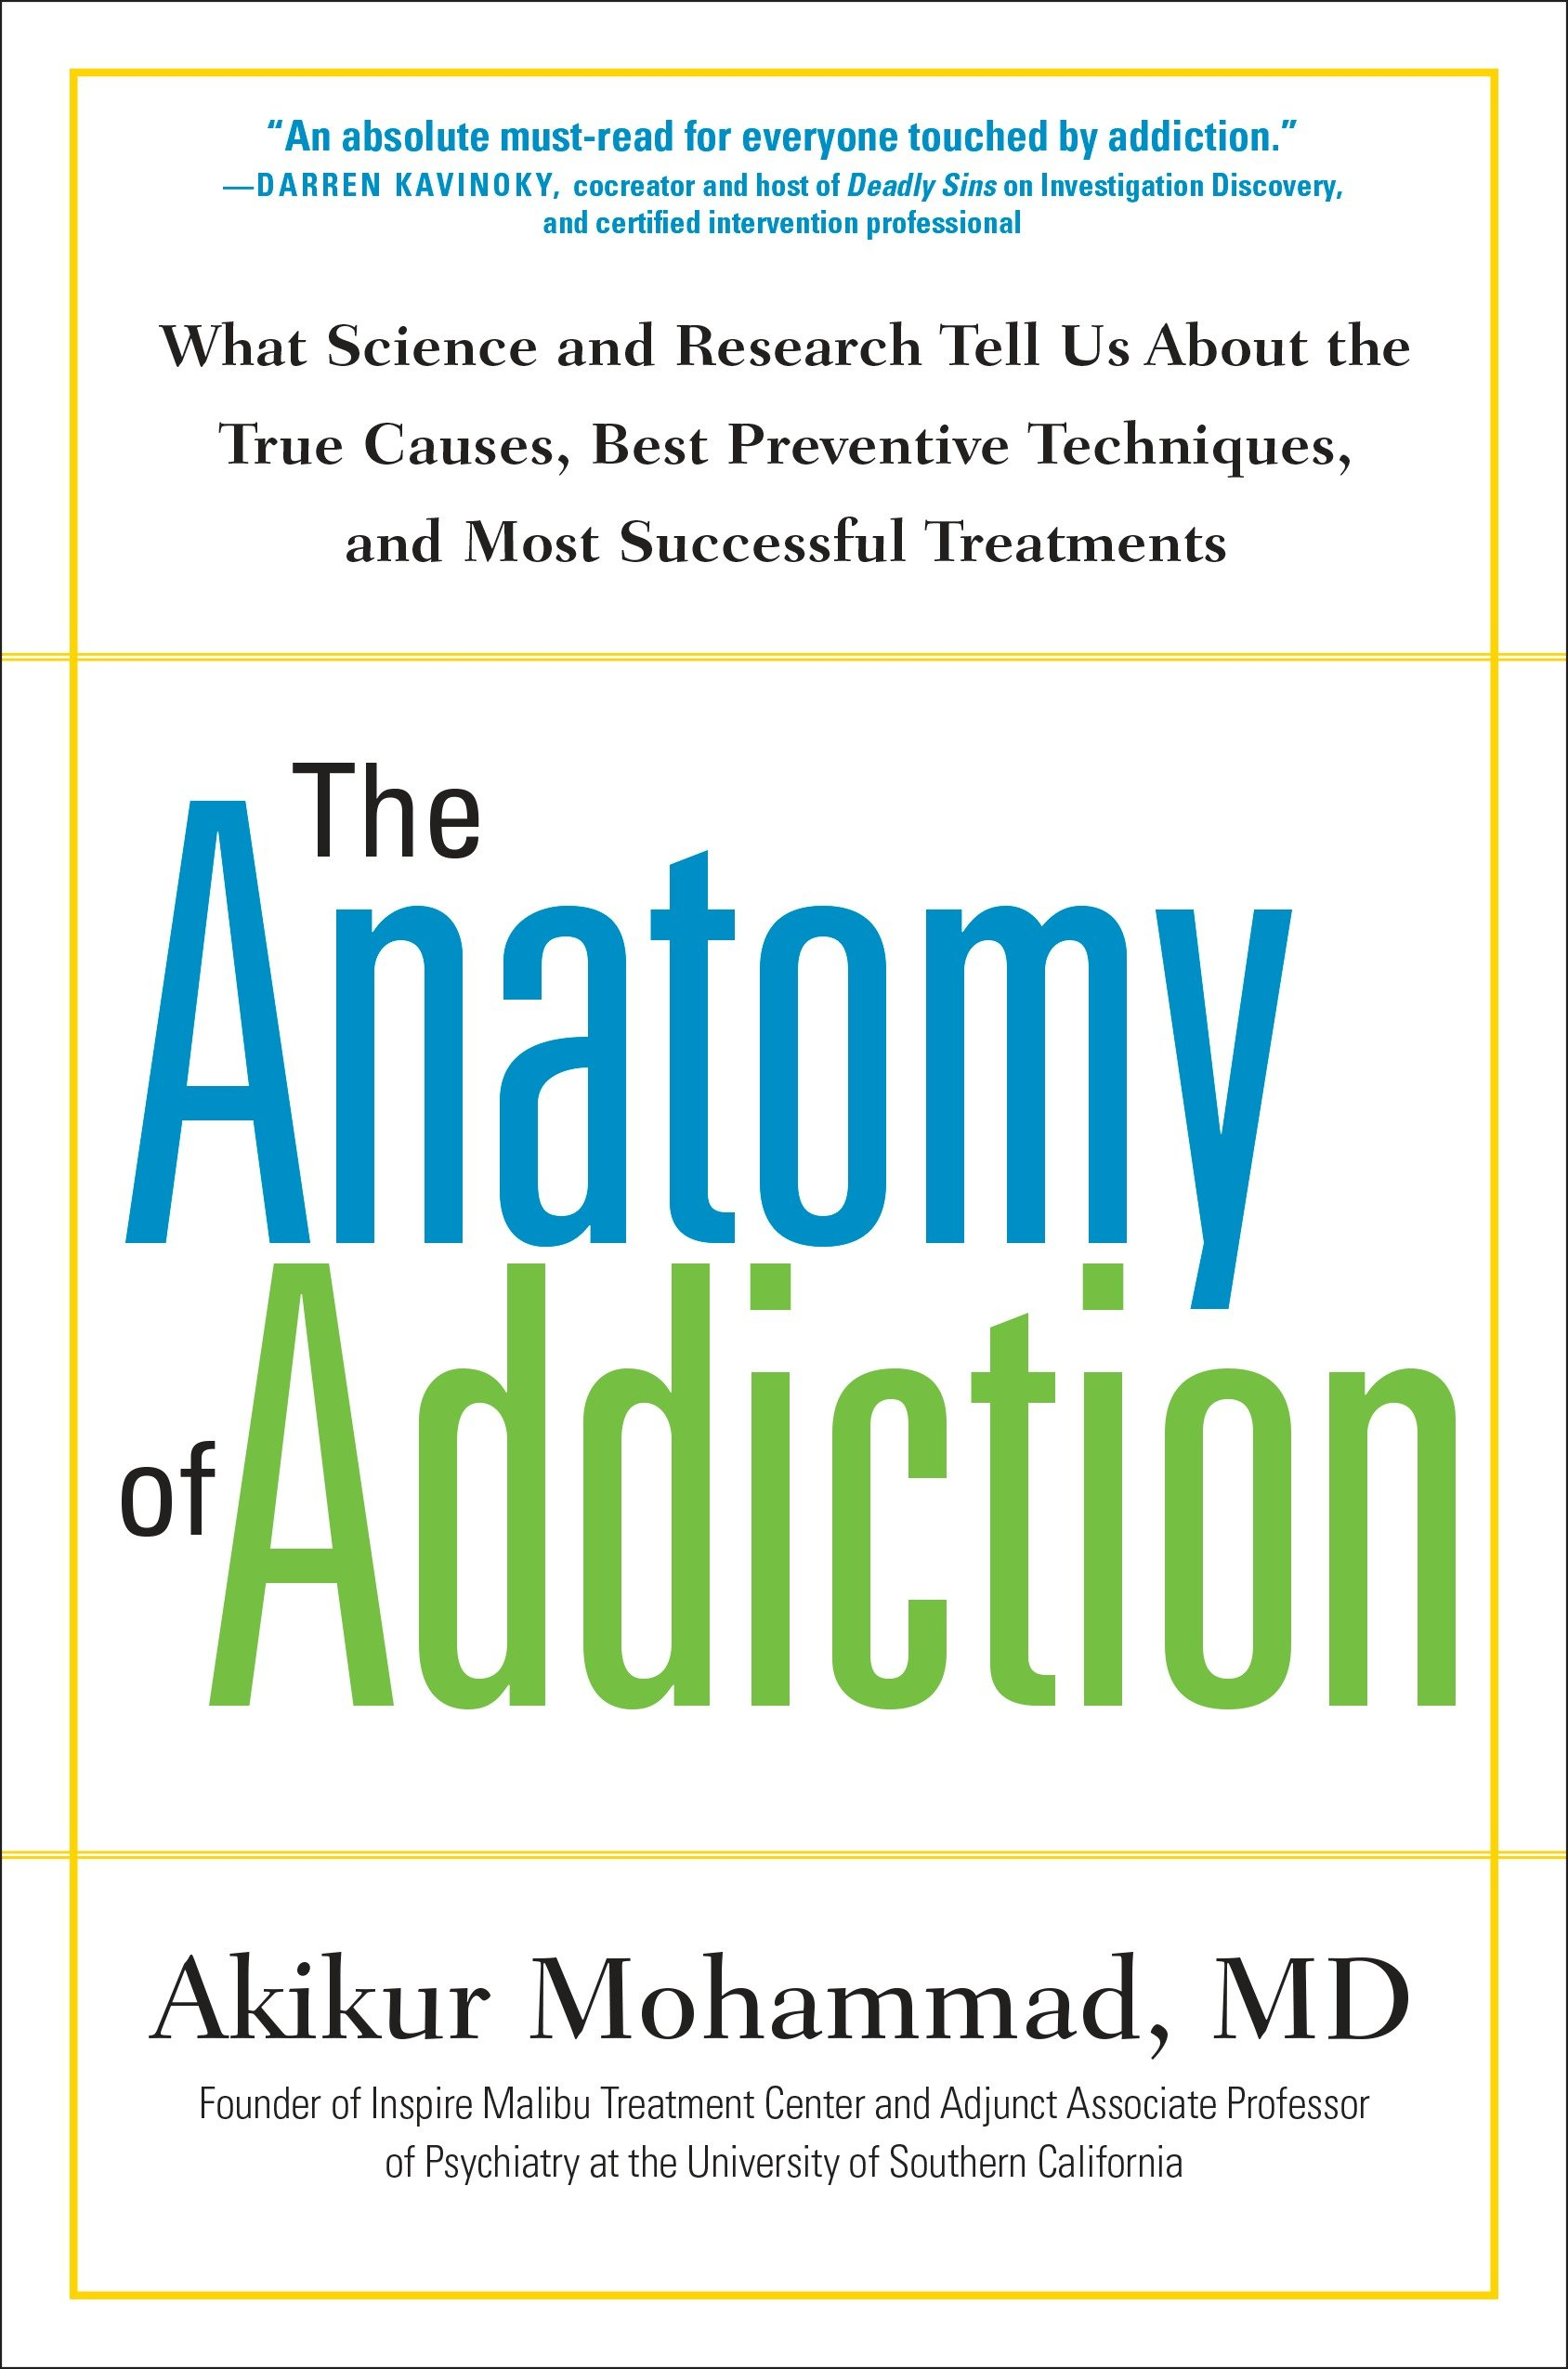 The Anatomy of Addiction What Science and Research Tell Us About the True Causes, Best Preventive Techniques, and Most Successful Treatments